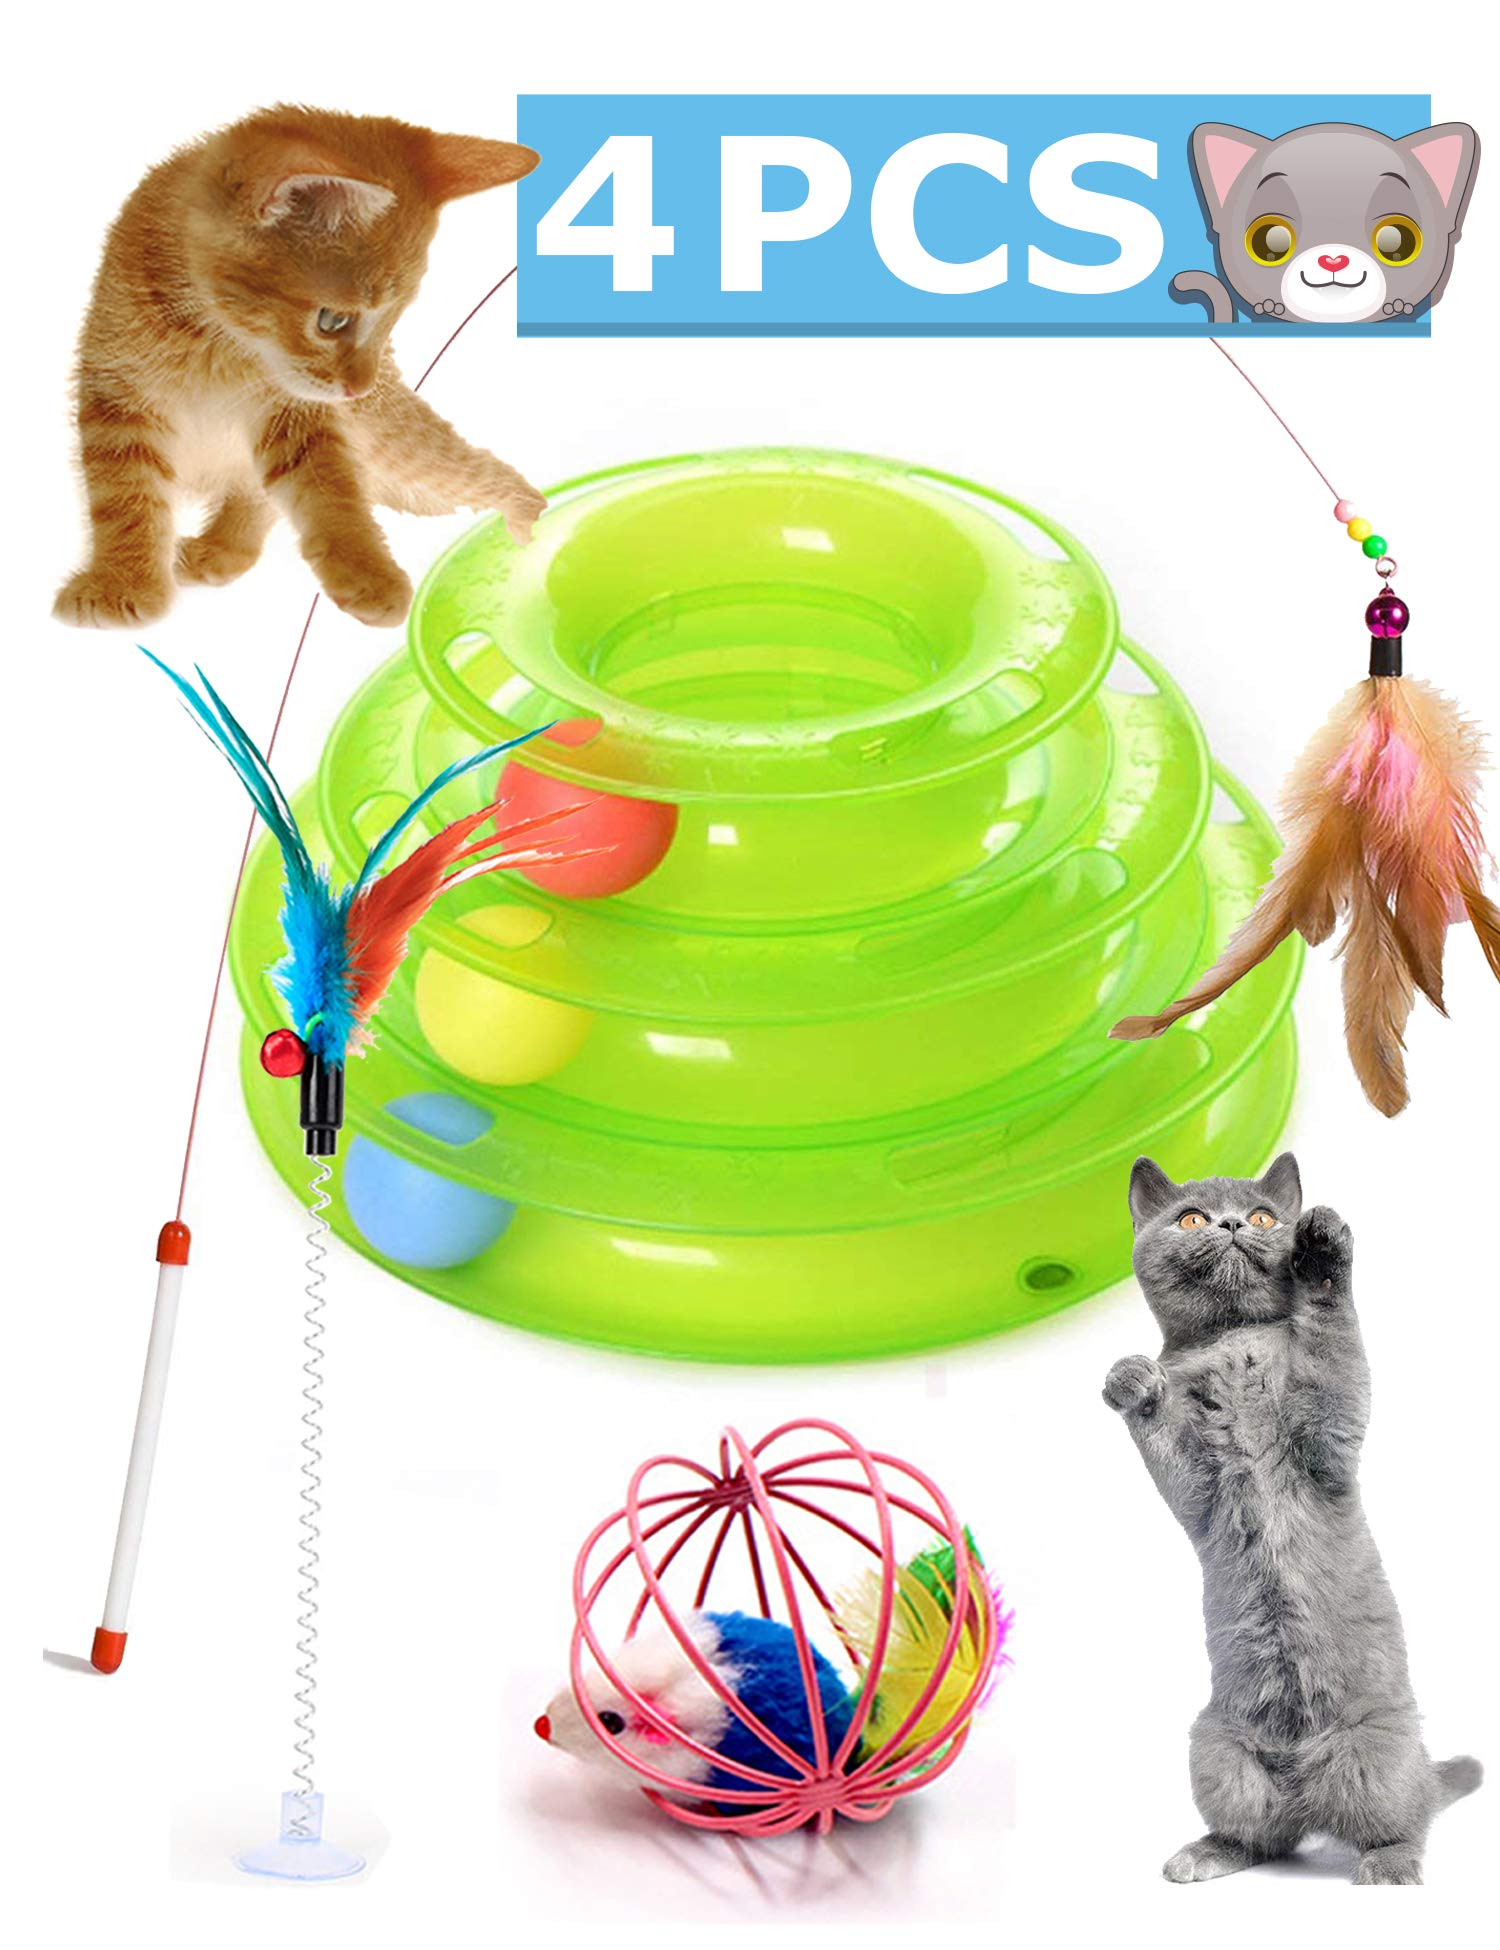 Petove Cat Toys Tower of Tracks 3 Level Cat Tracks Interactive Ball Toy, Cat Teaser Wand, Cage Mouse and Feather Fluffy Mouse Toy Setfor Cat, Kitten(Green 4 Toys)